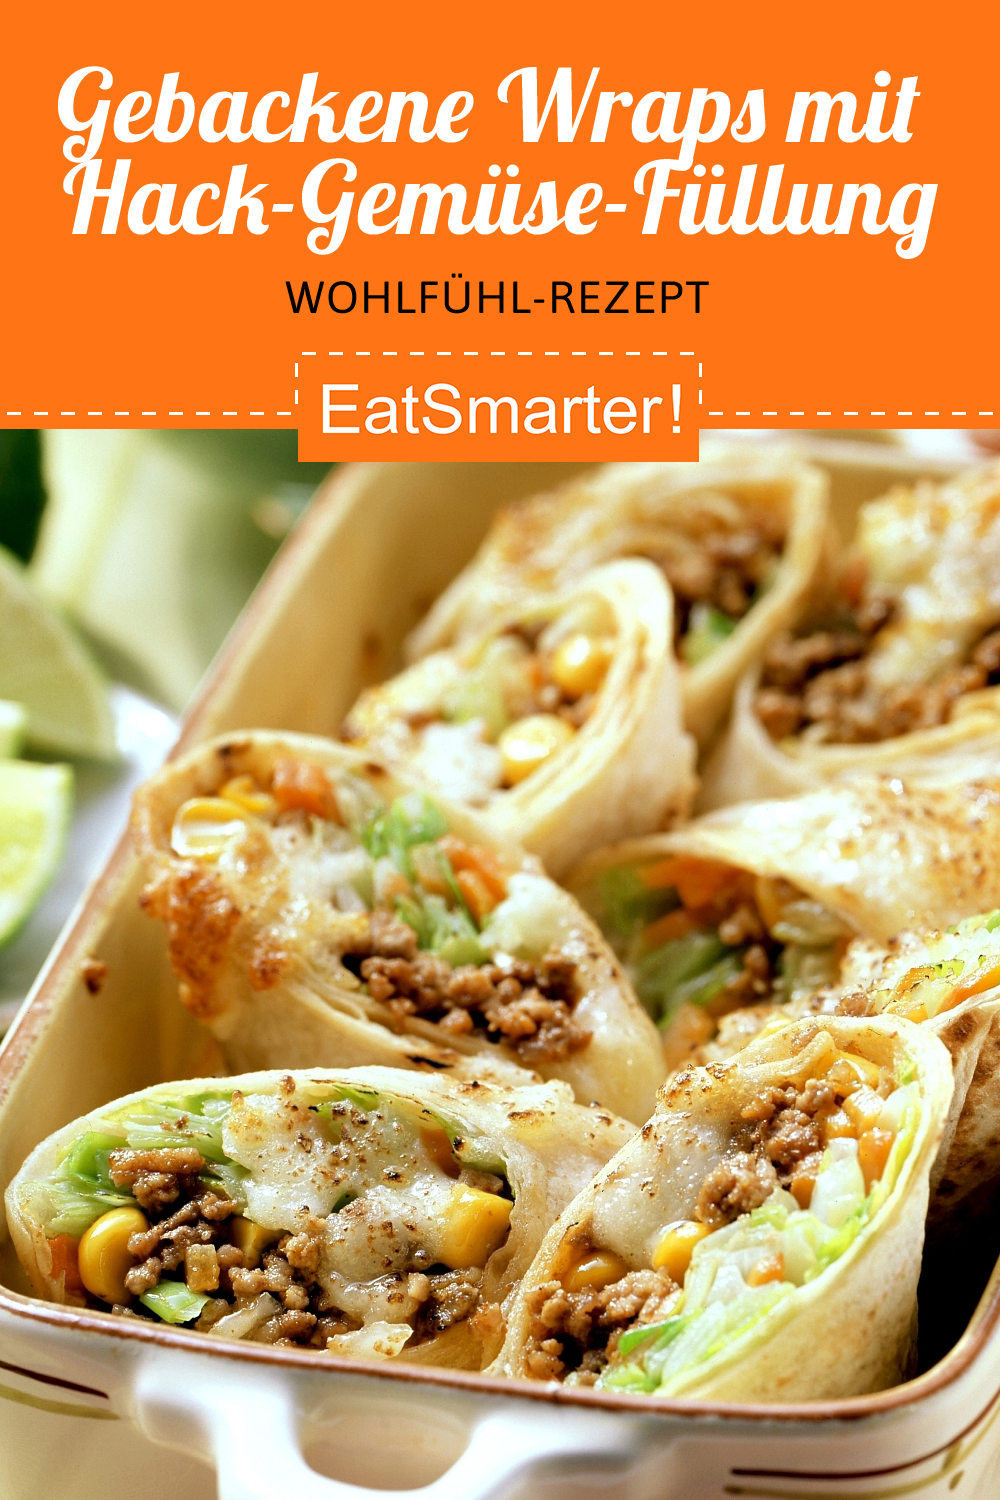 Photo of Baked wraps with mince and vegetable stuffing